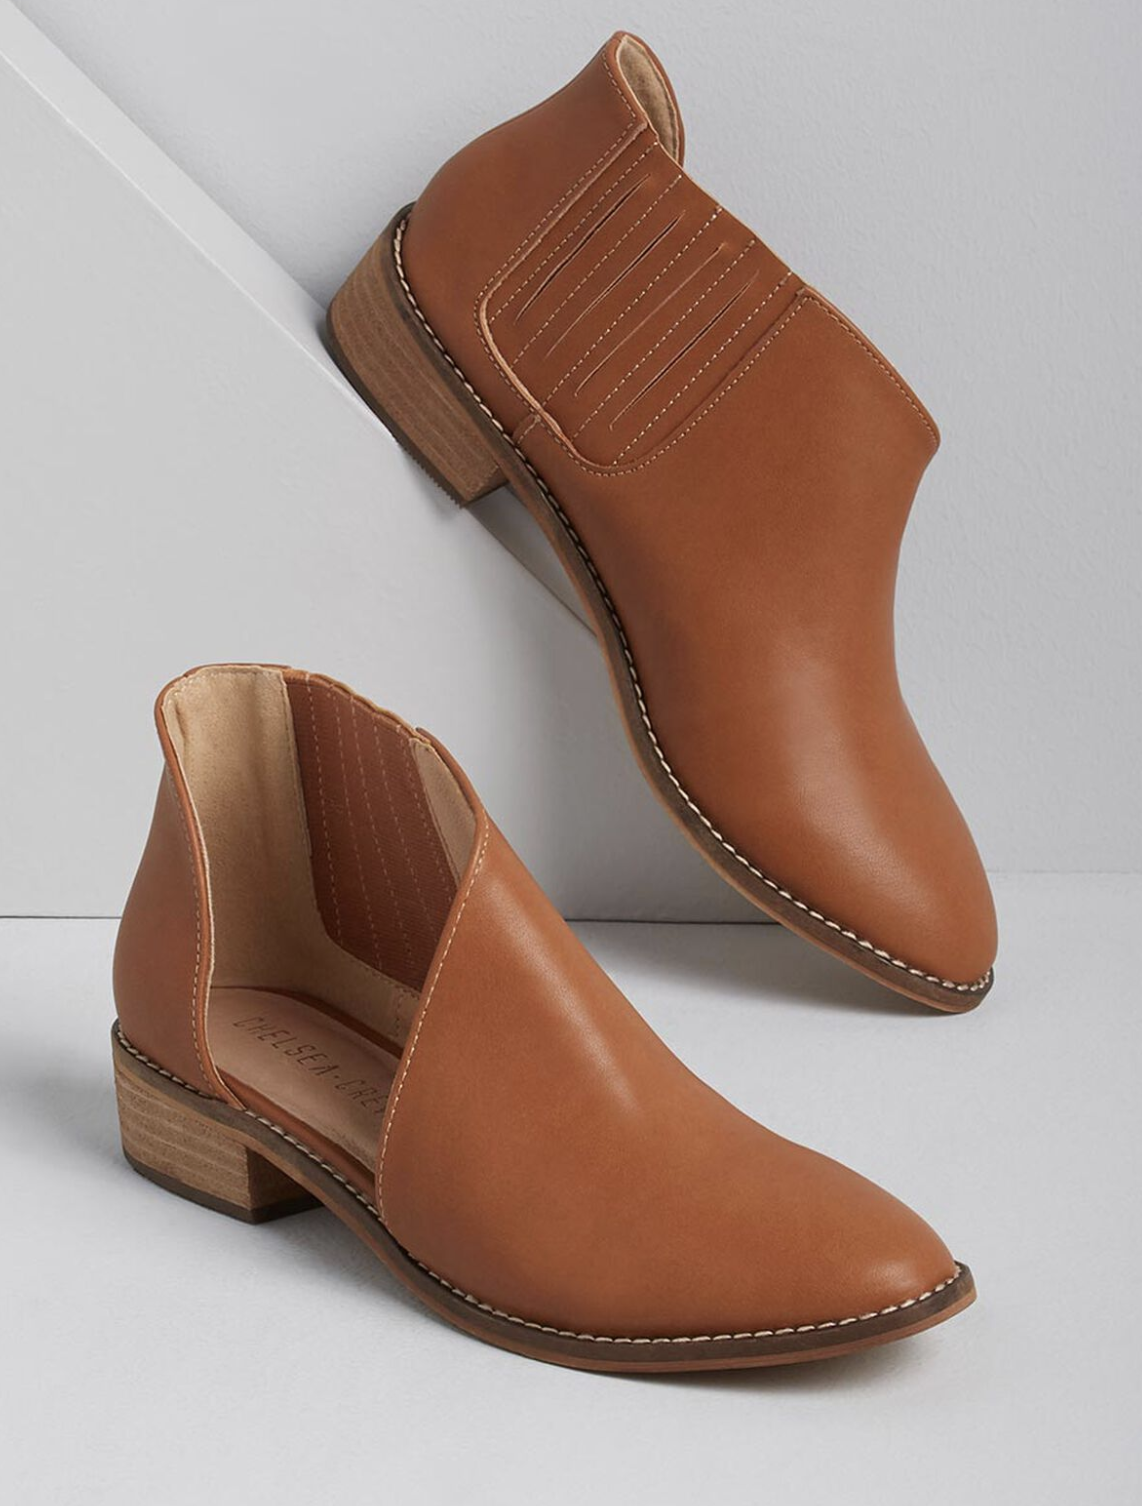 A pair of Chelsea ankle boots in light brown with a cut-out at the ankle